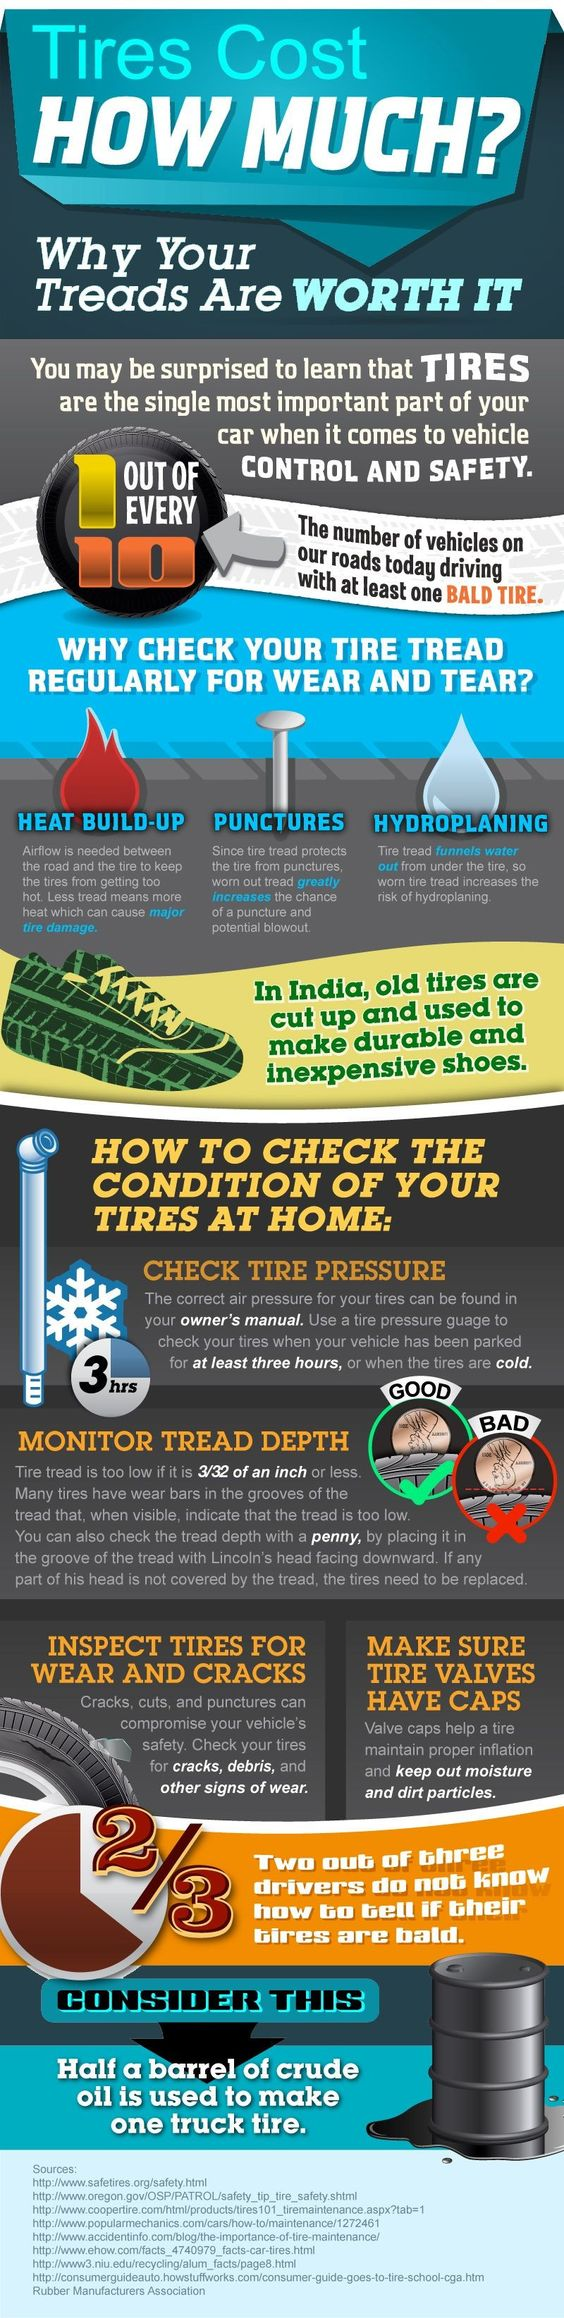 tires cost how much why your treads are worth it infographic you may be surprised to learn. Black Bedroom Furniture Sets. Home Design Ideas